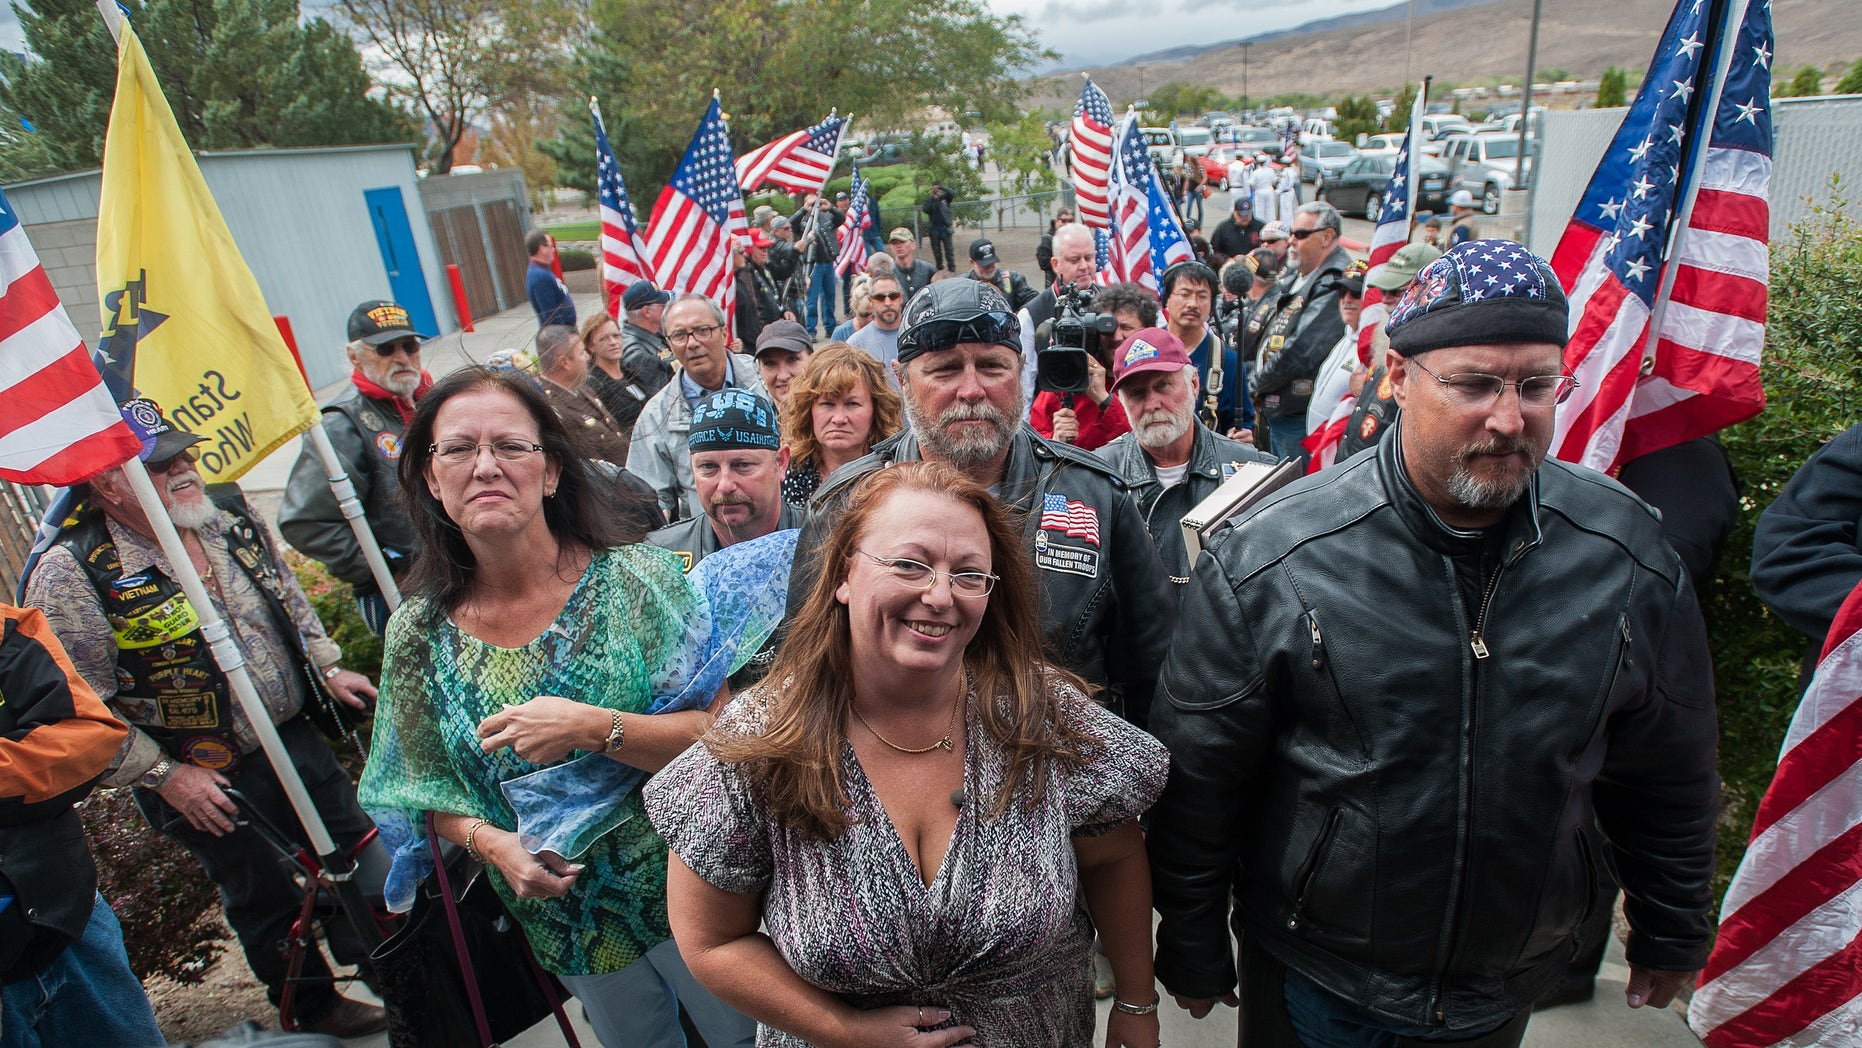 Sept. 21, 2013: Donna Gregory of St. Louis and members of the Patriot Guard wait to enter Dayton Intermediate School to give Peggy Eddington-Smith, 69, of Dayton, Nev., recently found personal items of her father, Pfc. John Eddington of Leadwood, Mo., in Dayton, Nev.